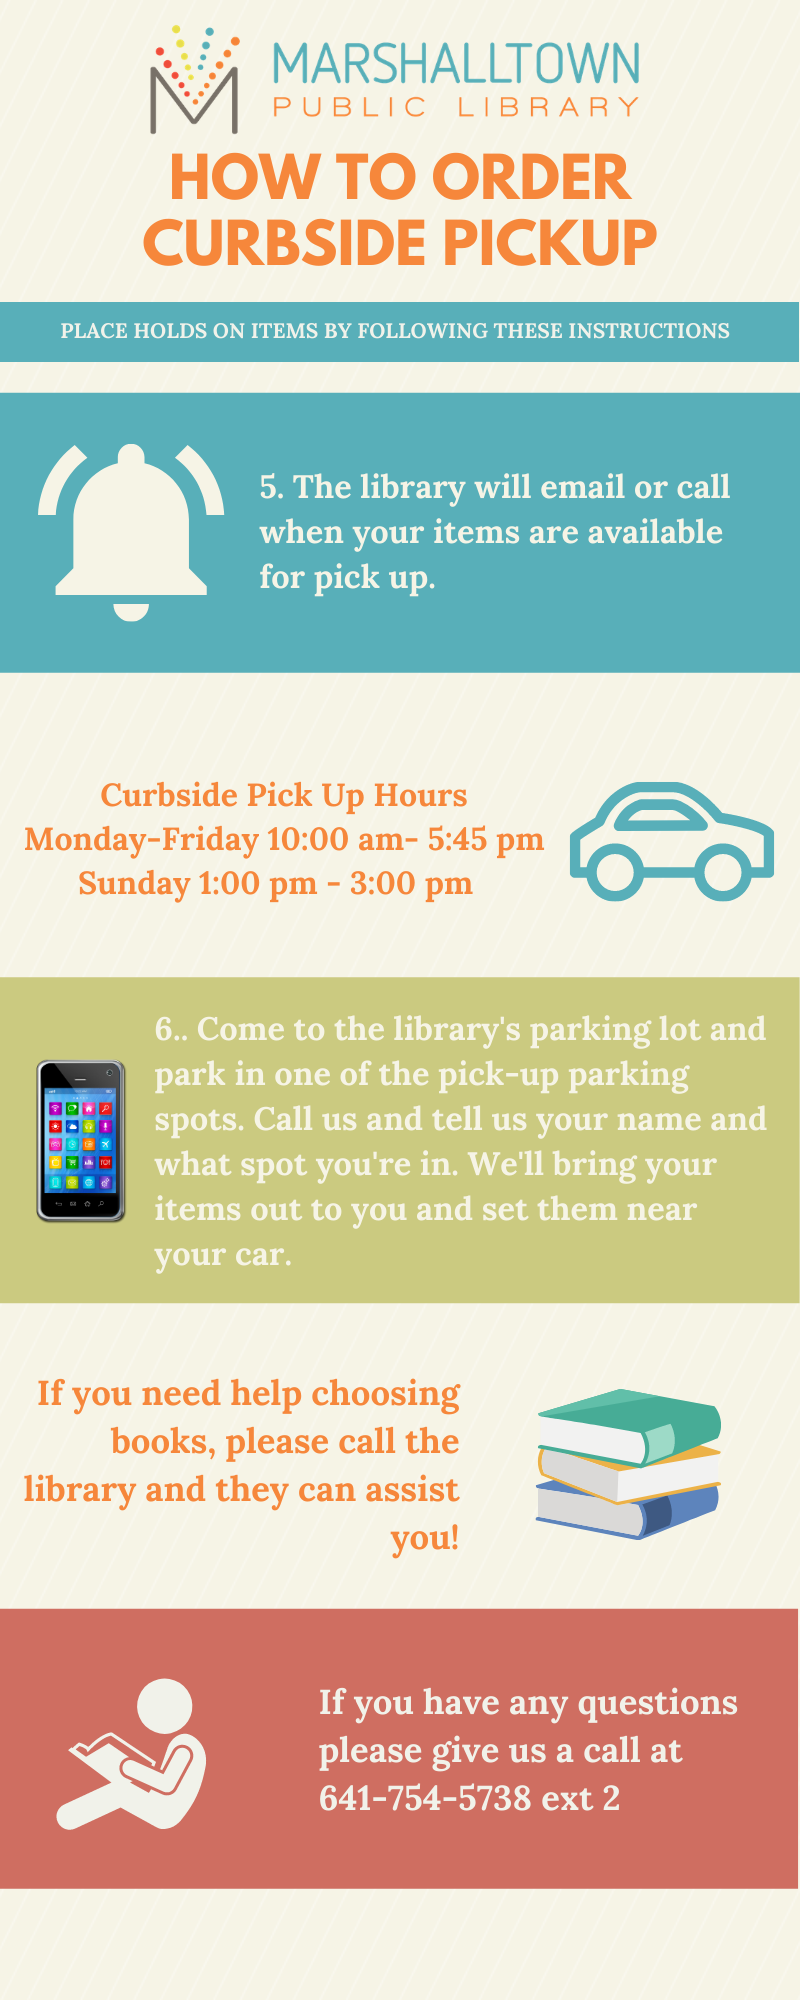 An infographic that explains the curbside pickup process. Wait for notification before coming to pick up your items. Curbside hours are 10:00am-5:45pm Monday through Friday and 1:00pm to 3:00pm on Sundays. Once notified, come and pick up your items in the library parking lot. There are three dedicated pickup spots to park in on the west side of our main entrance and call us at 641-754-5738 ext. 2 to tell us where you are. If you need help picking out items or with our online system, call us at 641-754-5738 ext. 2.